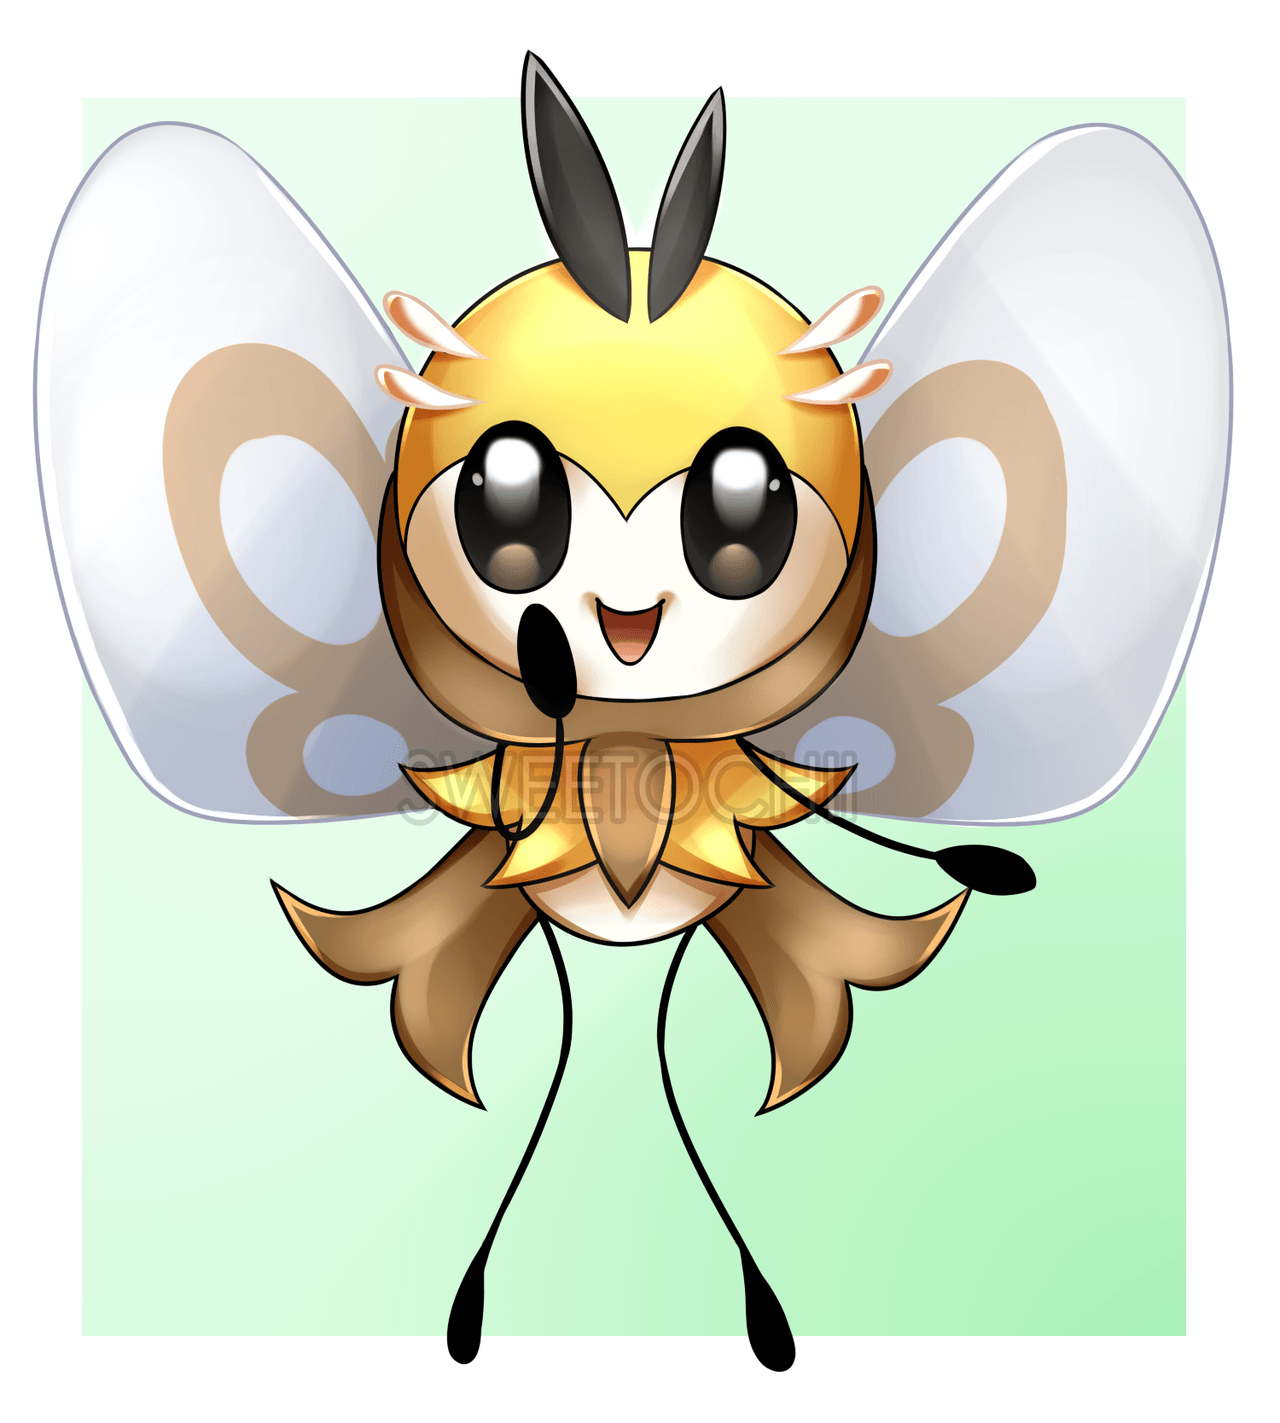 F] Ribombee by Sweetochii